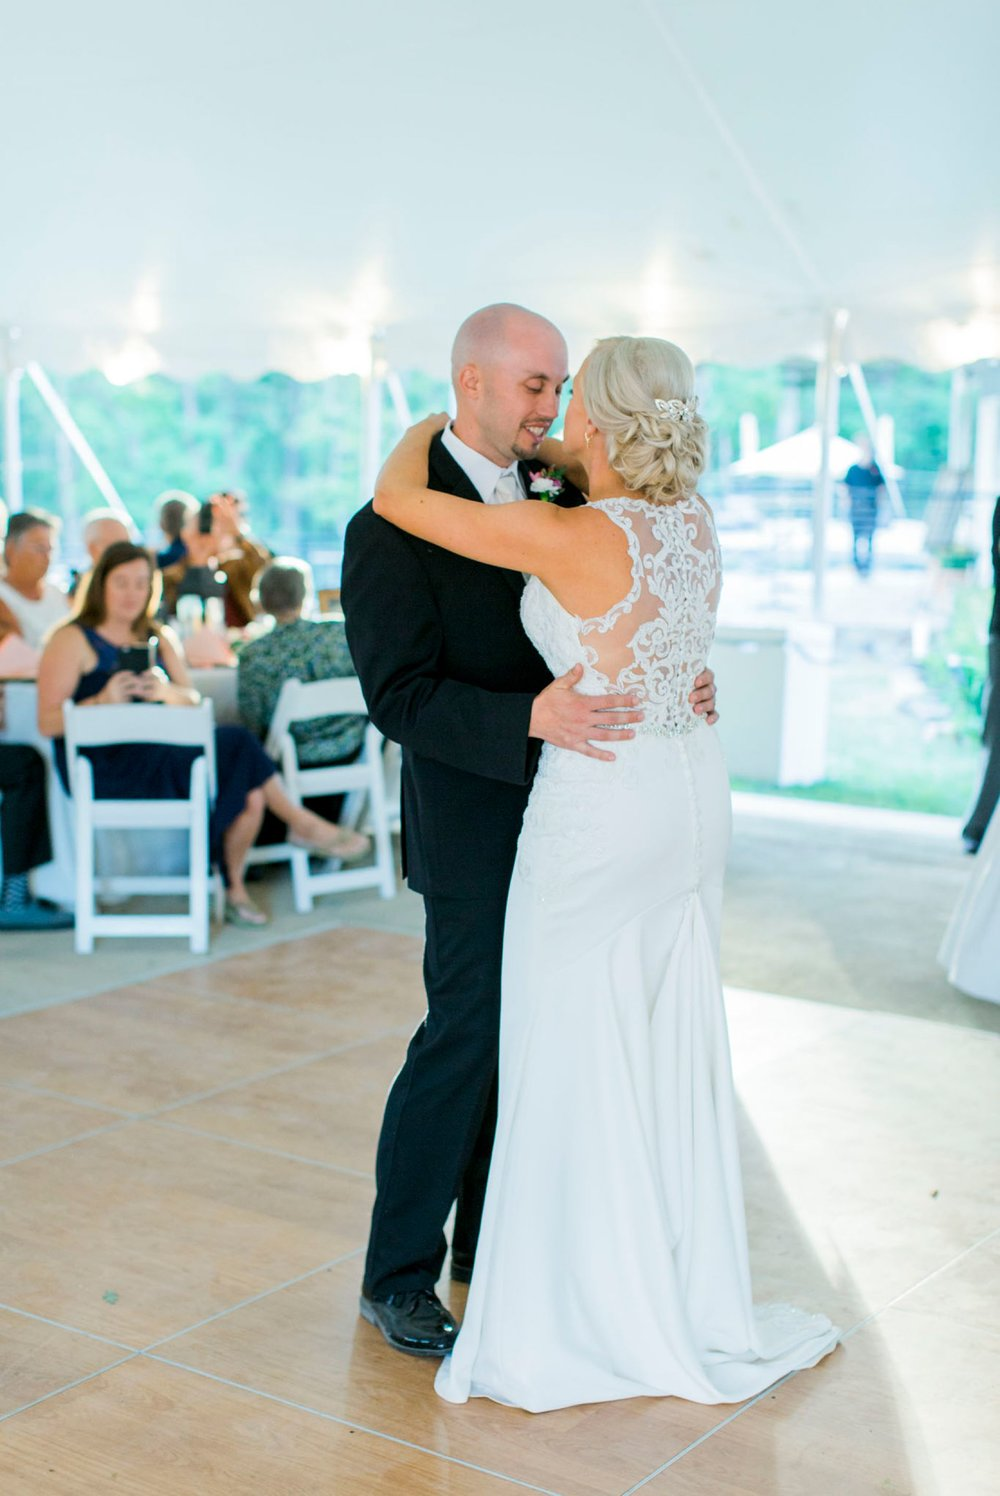 TheMillHouse_ChathamVA_WeddingPhotographer_VirginiaWeddingPhotographer_9.jpg 128.jpg